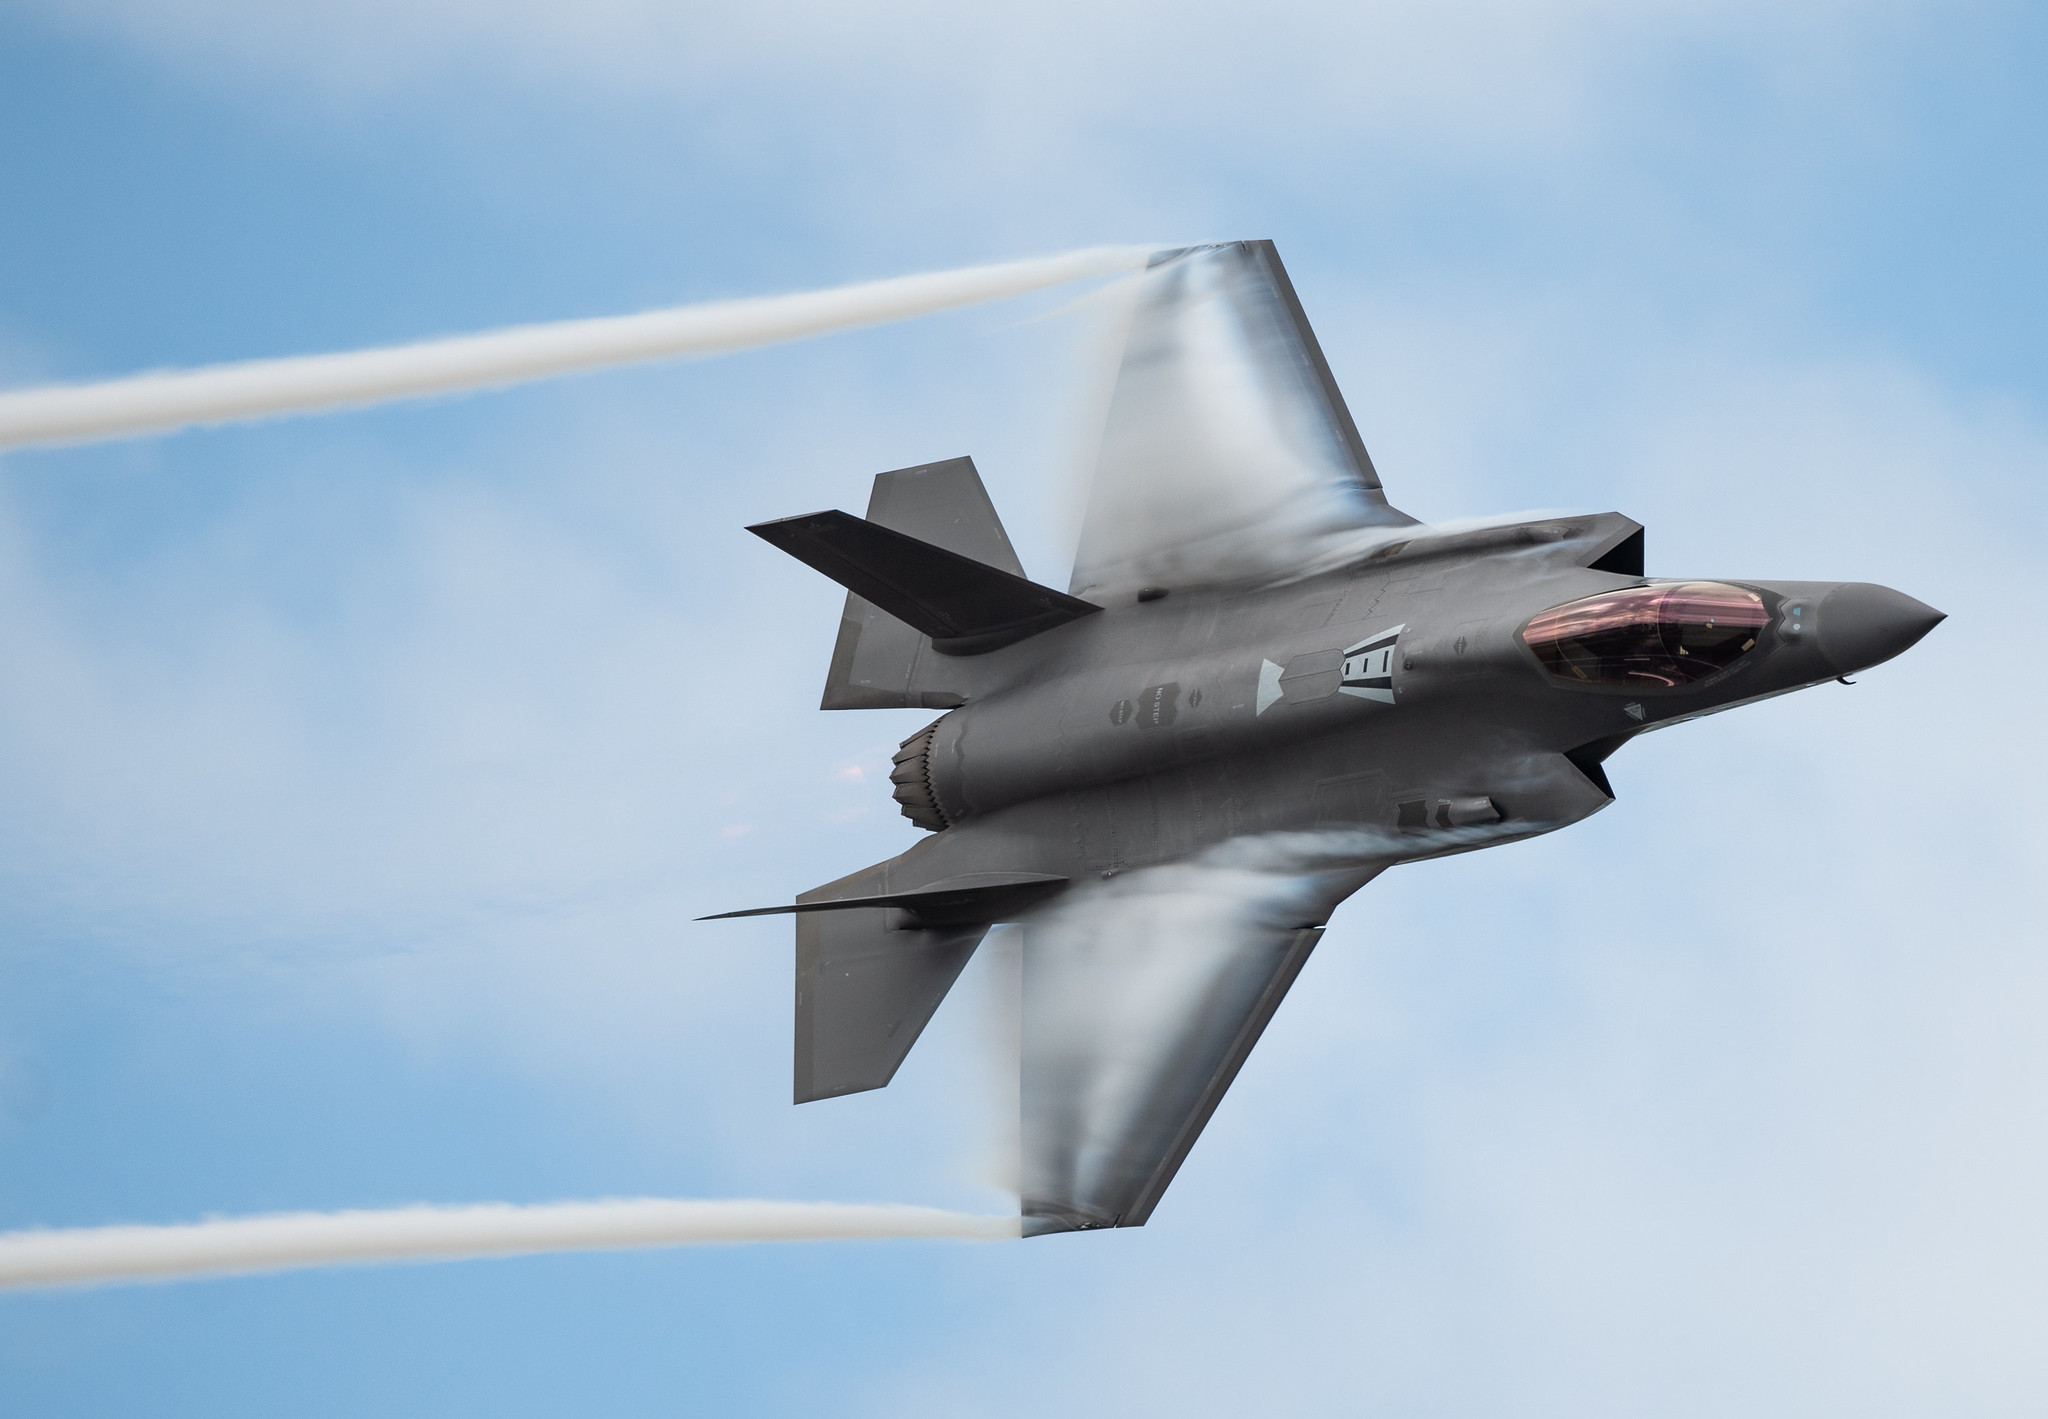 """U.S. Air Force Capt. Andrew """"Dojo"""" Olson, F-35 Demonstration Team pilot and commander, performs a dedication pass during the Melbourne Air and Space Show in Melbourne, Fla., March 30, 2019. (Senior Airman Alexander Cook/Air Force)"""